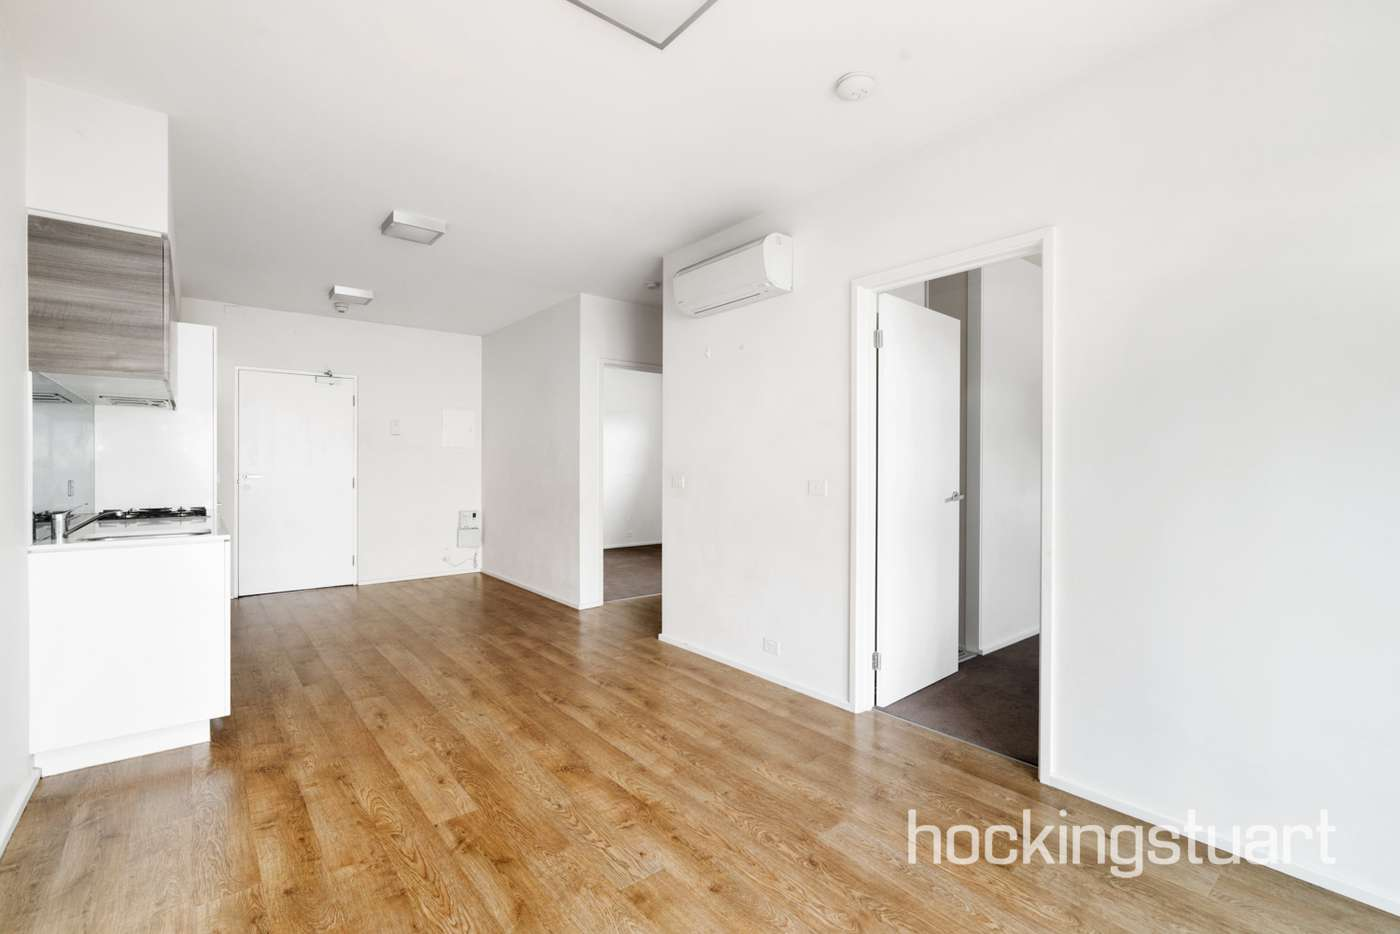 Main view of Homely apartment listing, 209/86 Cade Way, Parkville VIC 3052